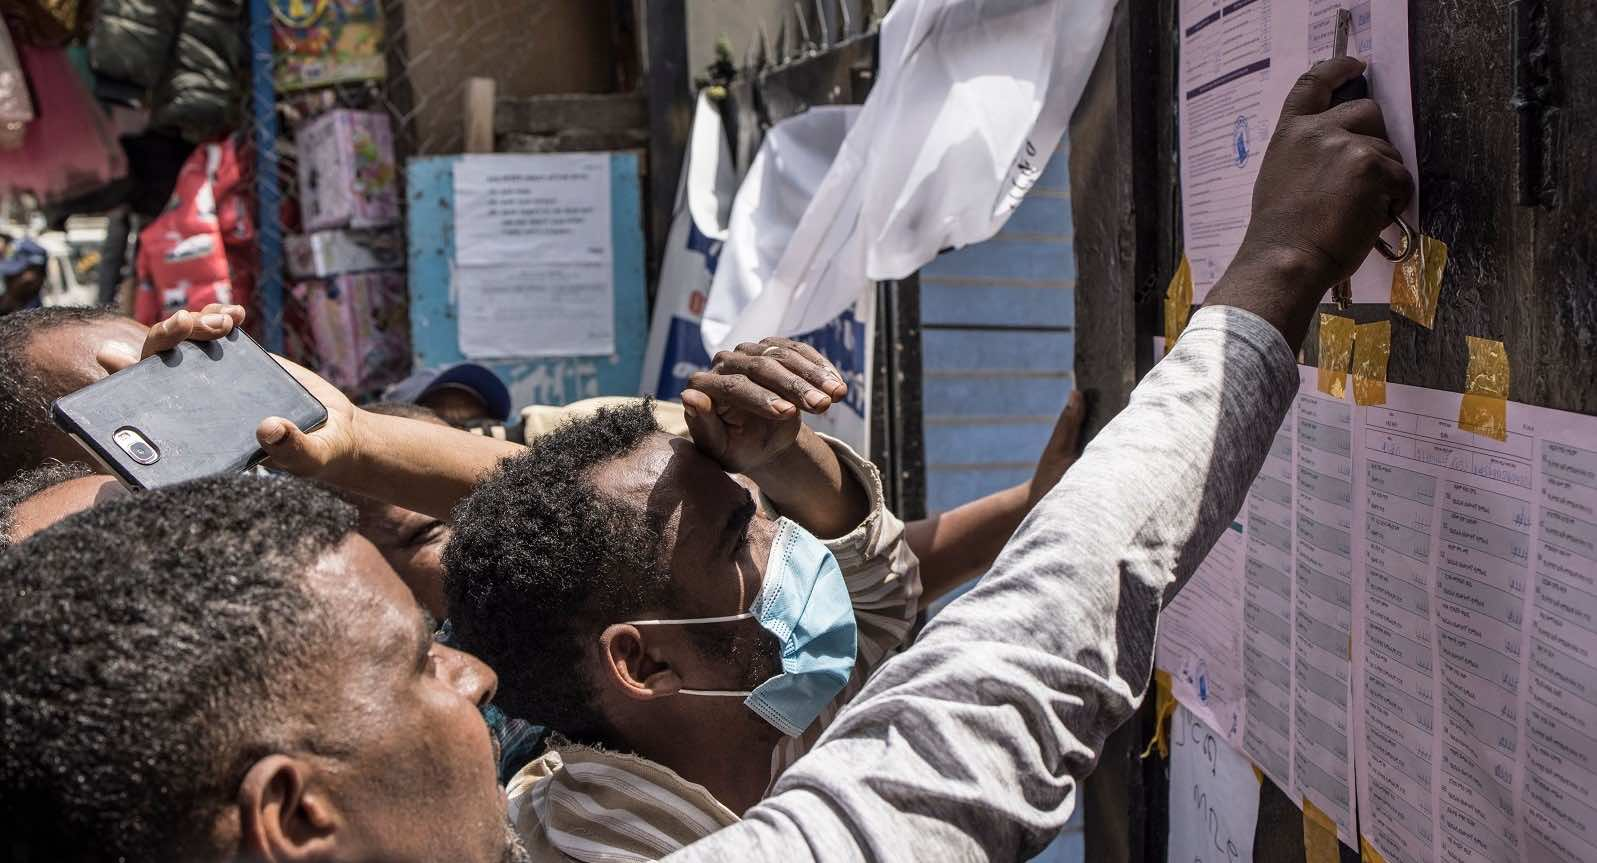 Voters check tallies at a polling station in Addis Ababa, 22 June 2021 (Marco Longari/AFP via Getty Images)